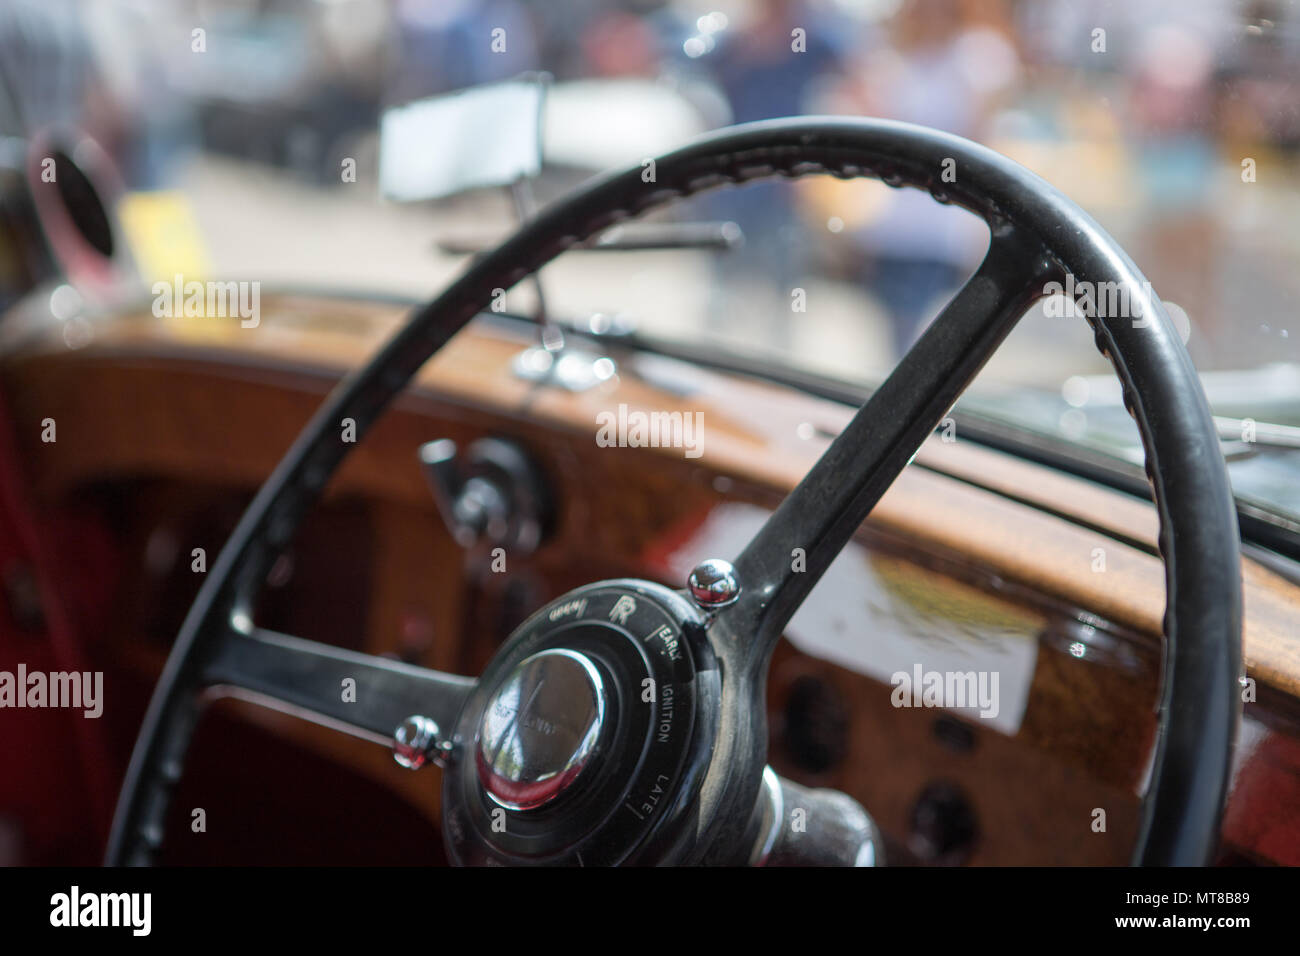 Steering wheel dashboard and Classic car interior, vintage style, american car style, fifties sixties seventies, - Stock Image